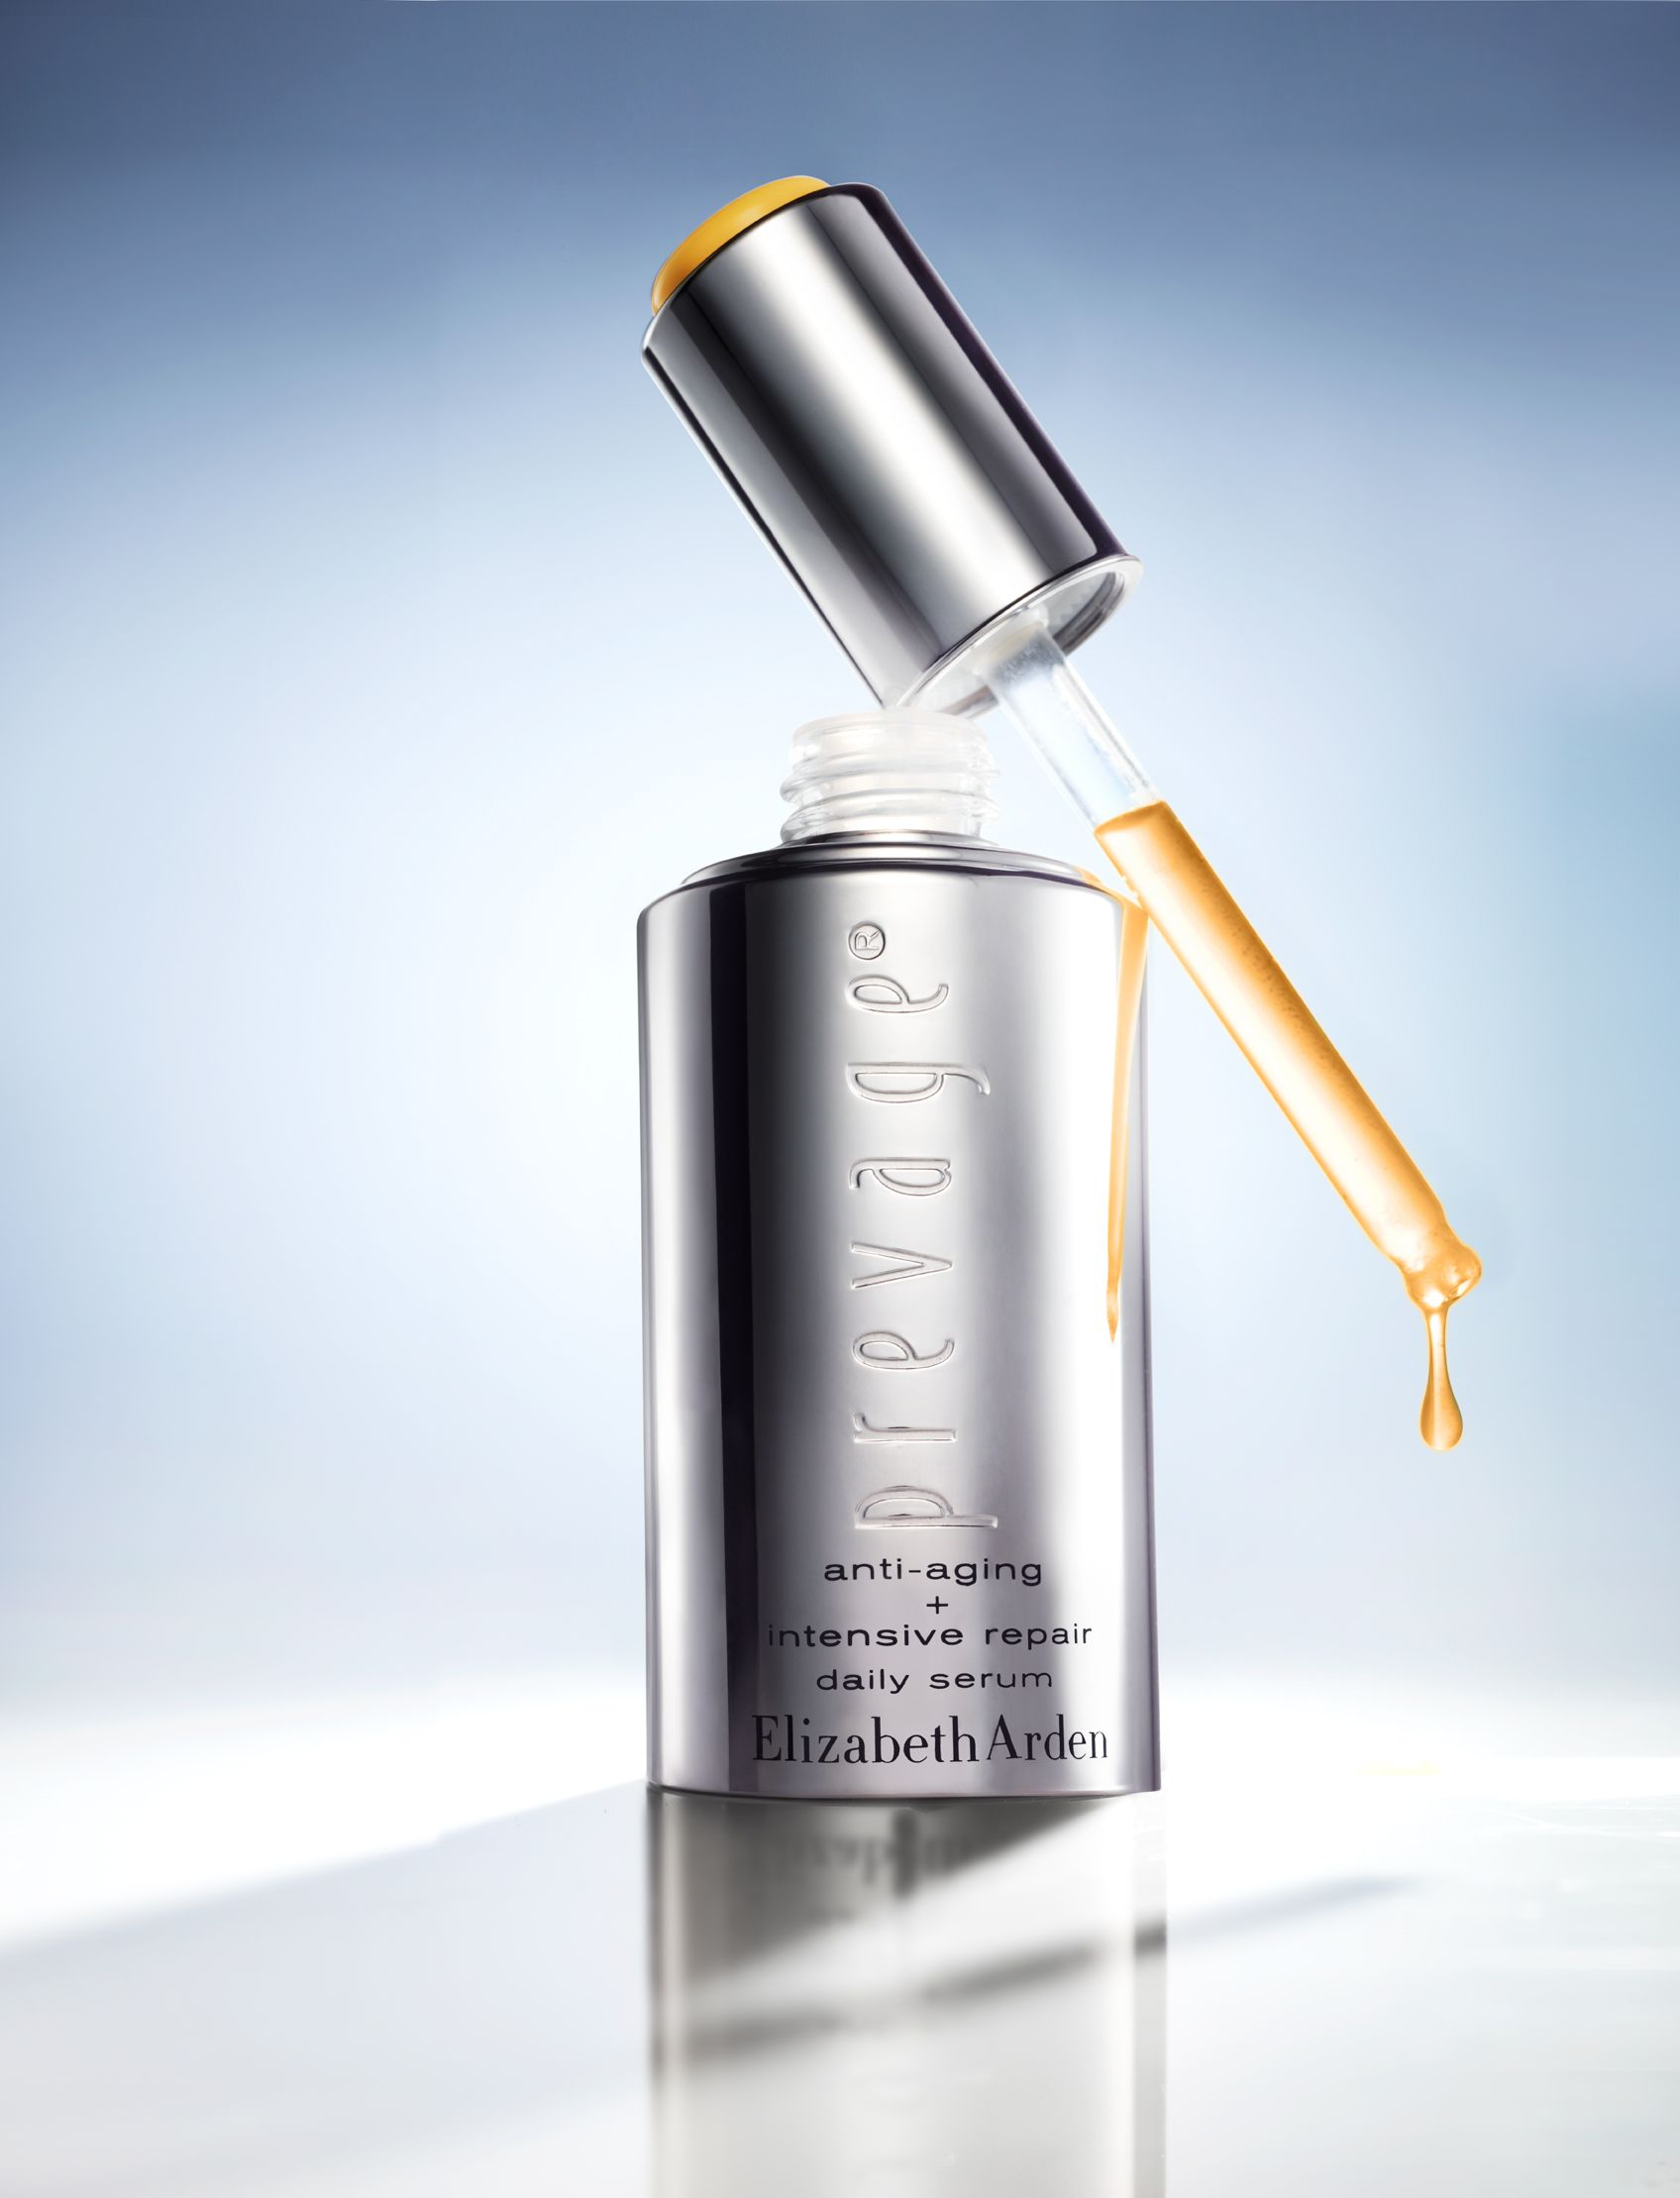 Elizabeth Arden Prevage Anti Aging Intensive Repair Daily Serum 1 0 Oz Reviews Skin Care Beauty Macy S Cosmetics Photography Beauty Products Photography Elizabeth Arden Prevage